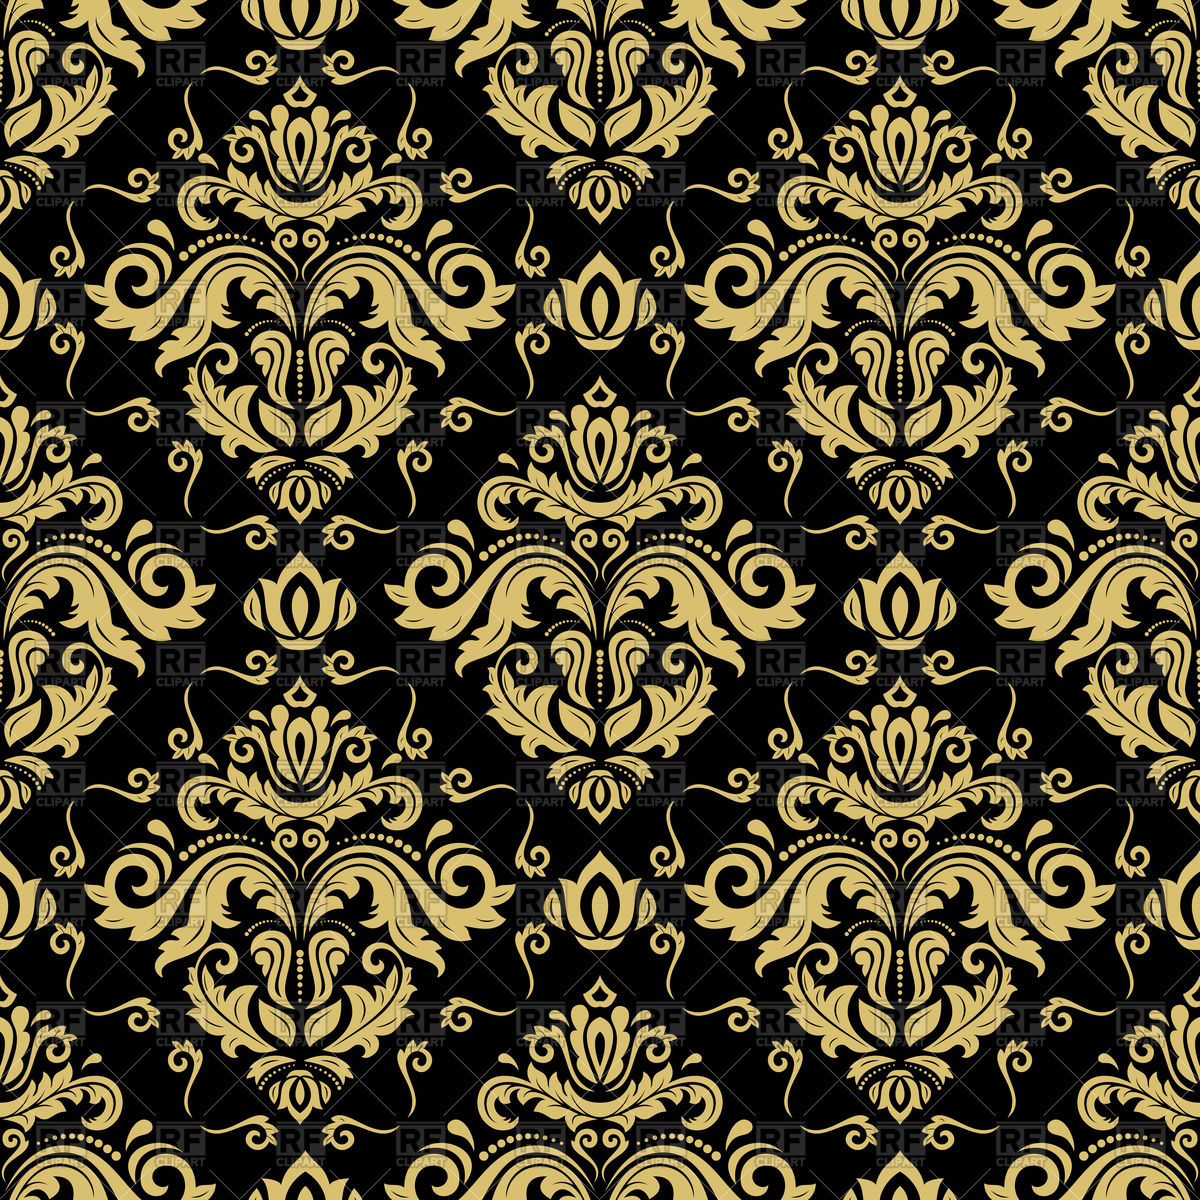 1200x1200 Damask Black And Gold Seamless Pattern Vector Image Vector